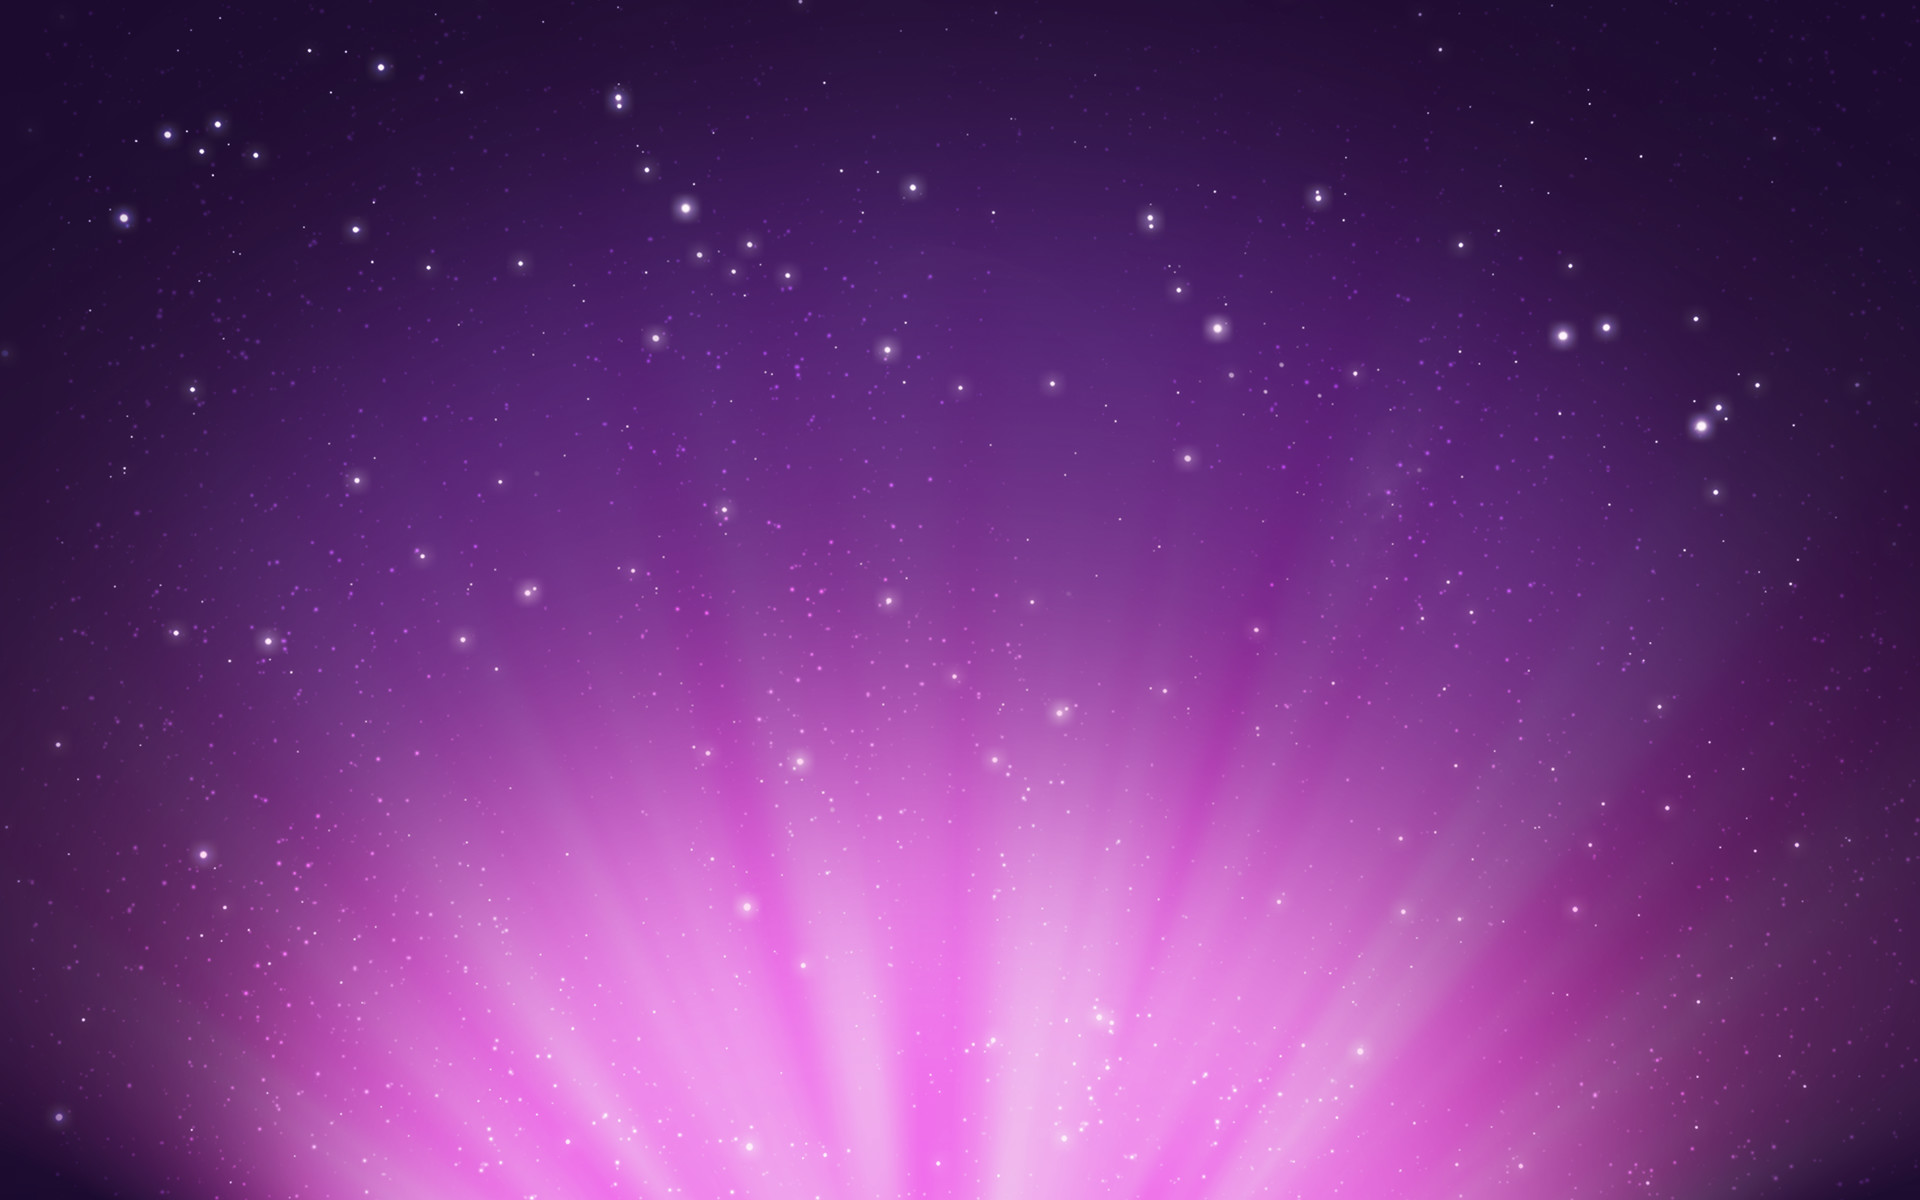 1920x1200 Full HD Wallpapers + Backgrounds, Purple, Space, Stars